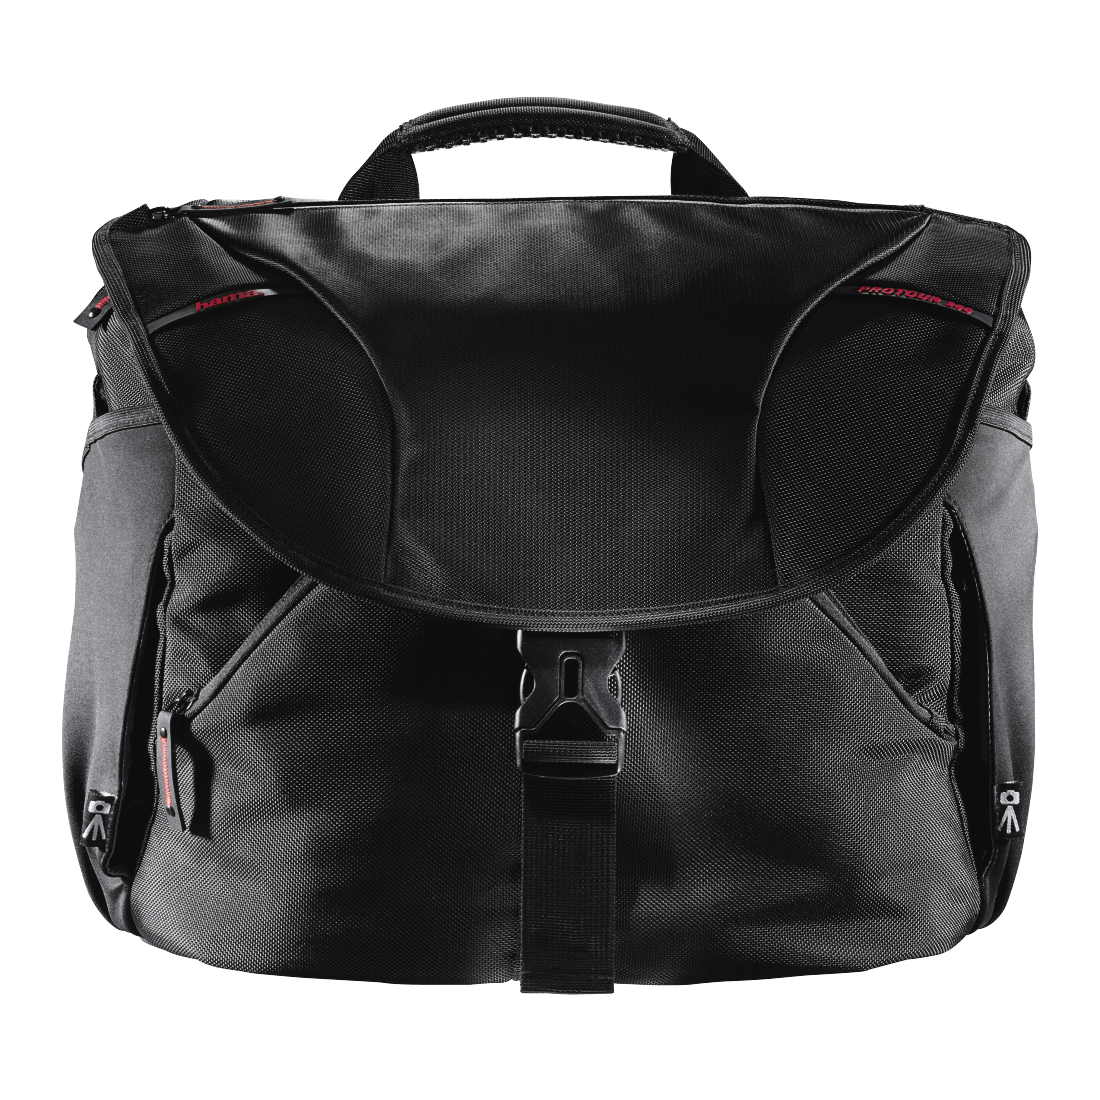 abx High-Res Image - Hama, Protour Camera Bag, 200, black